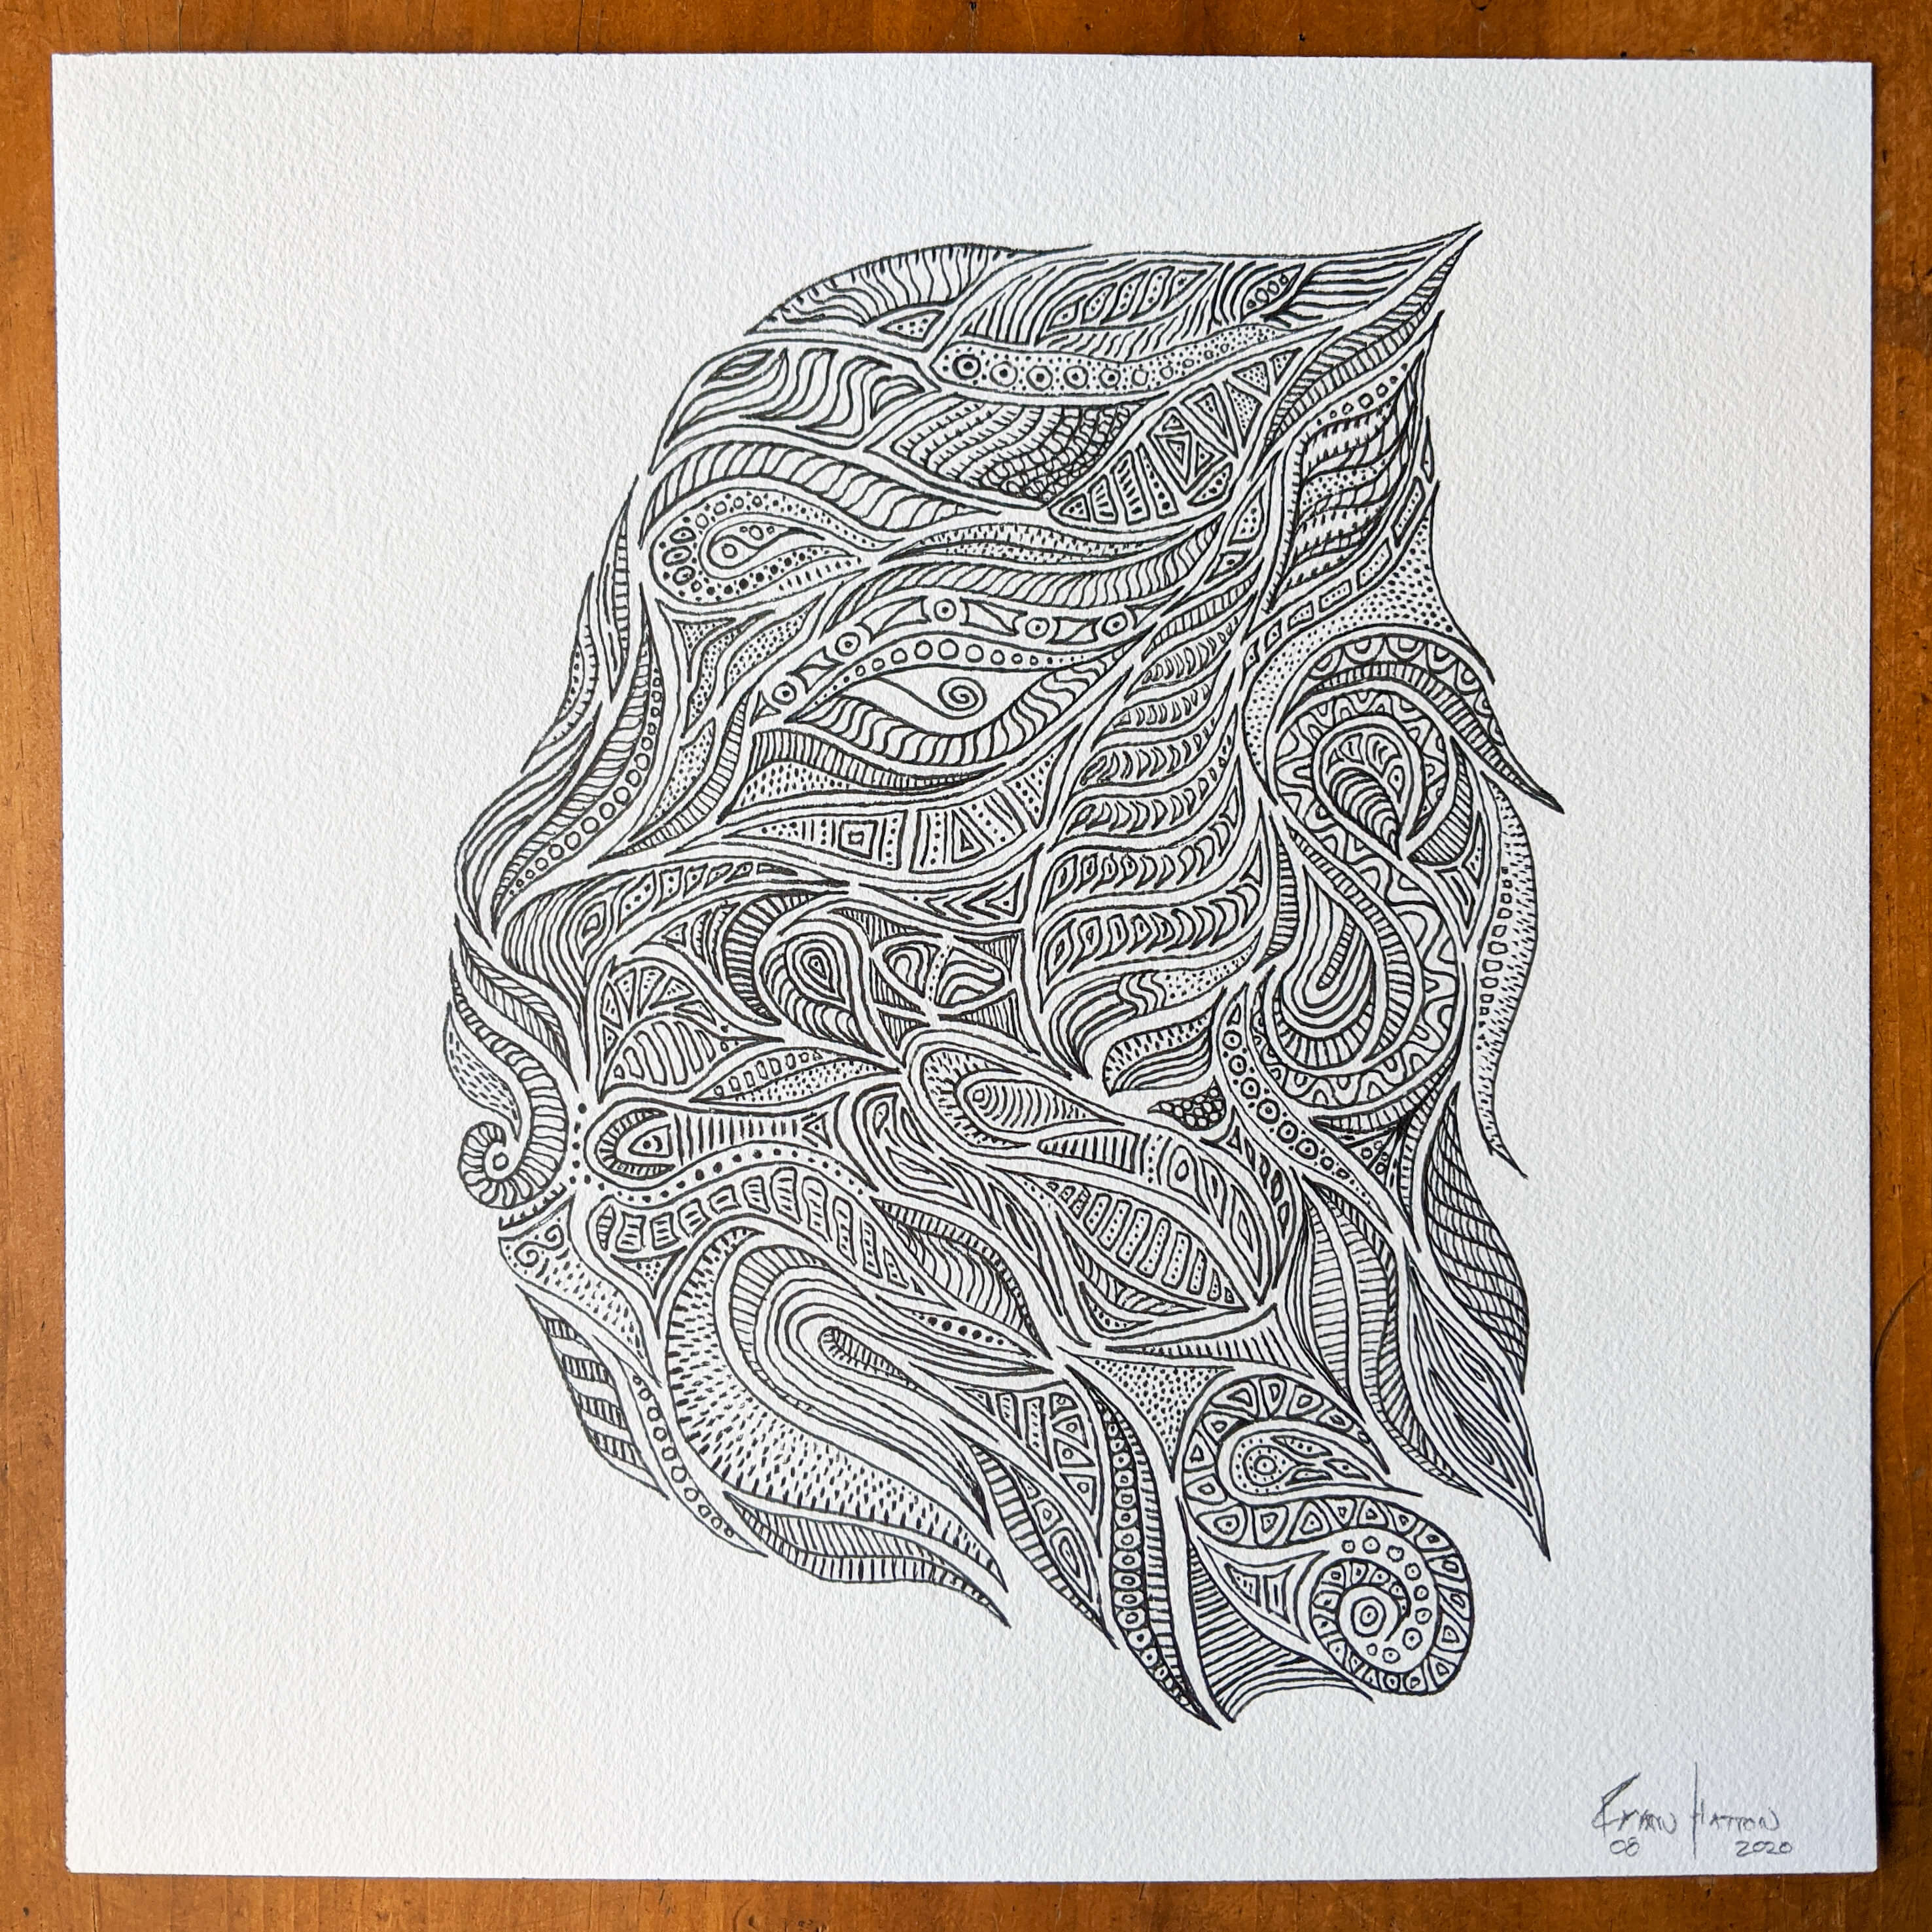 abstract drawing of a head